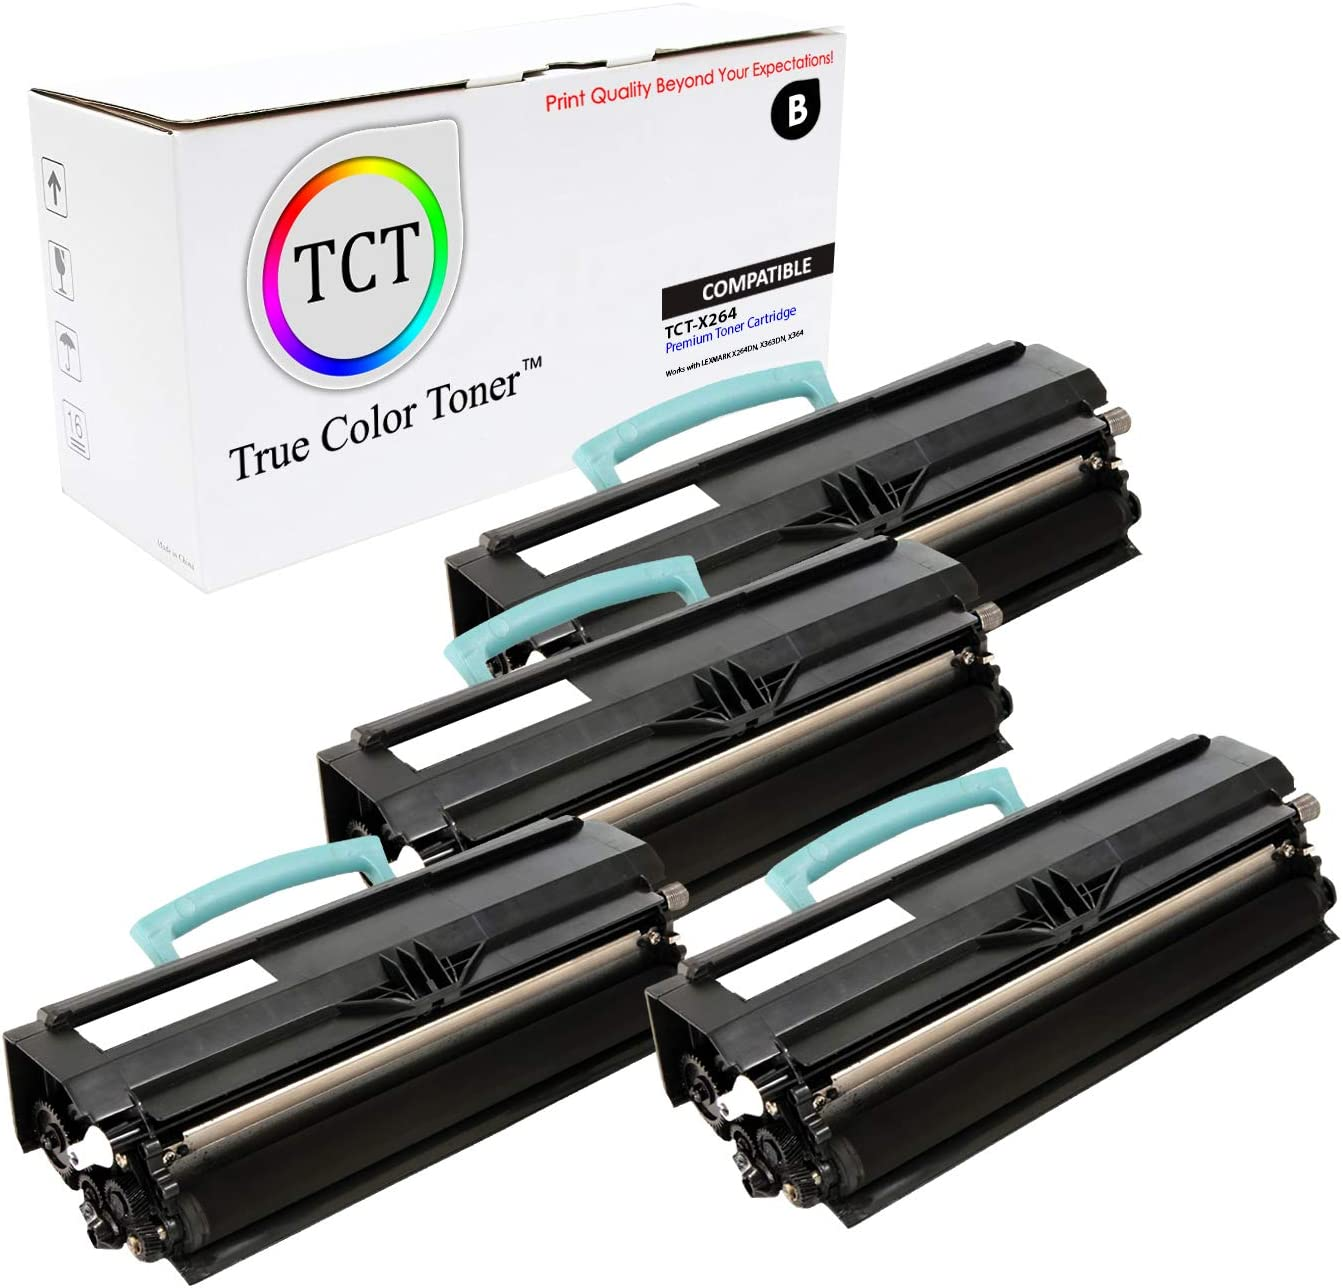 Black 3500 Pages at 5/% Coverage Lexmark Toner Cartridge